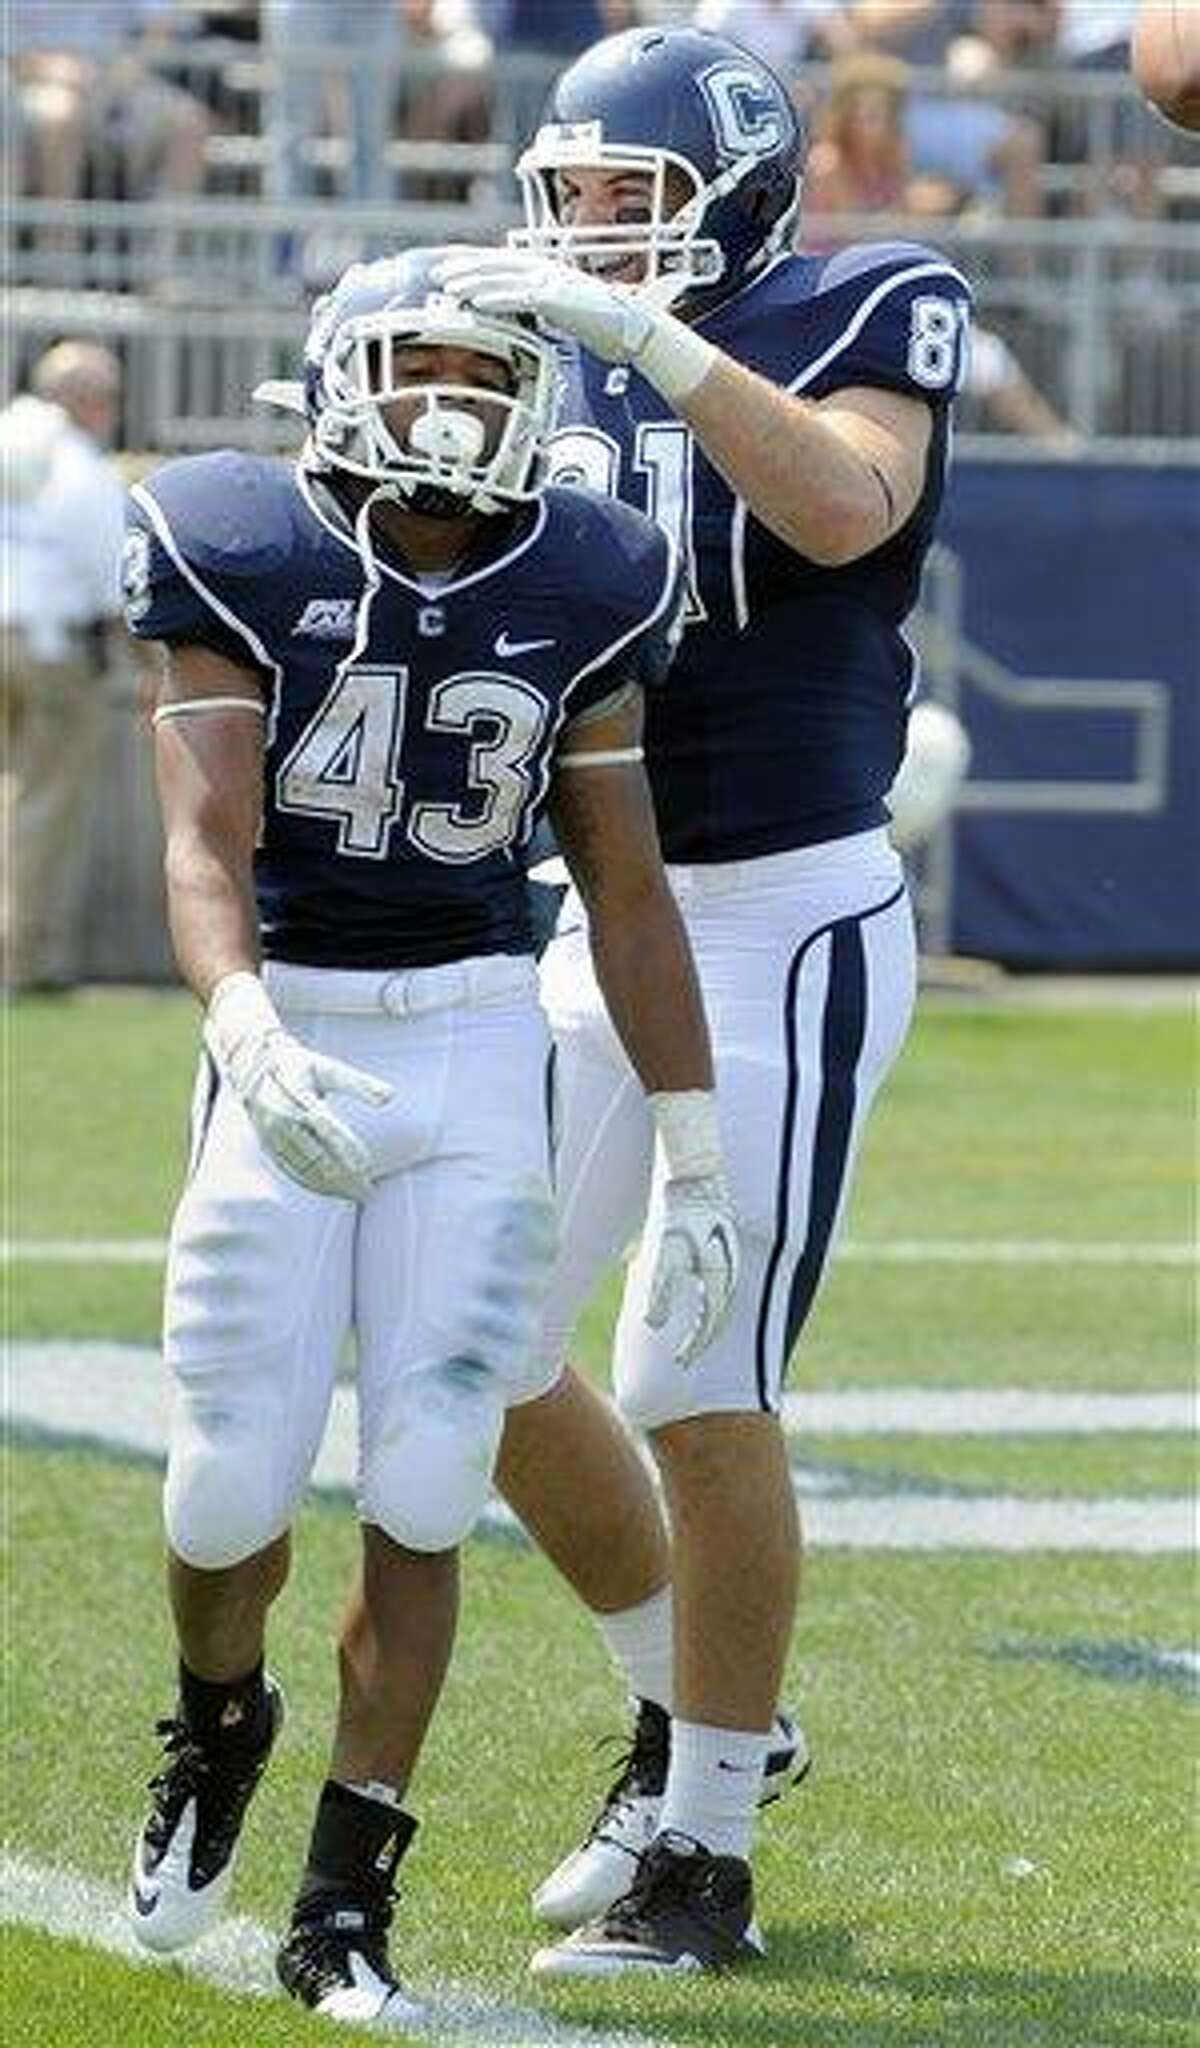 Connecticut's Lyle McCombs, left, celebrates with Corey Manning after scoring a touchdown during the first half of an NCAA college football game against Fordham in East Hartford, Conn., on Saturday, Sept. 3, 2011. (AP Photo/Fred Beckham)